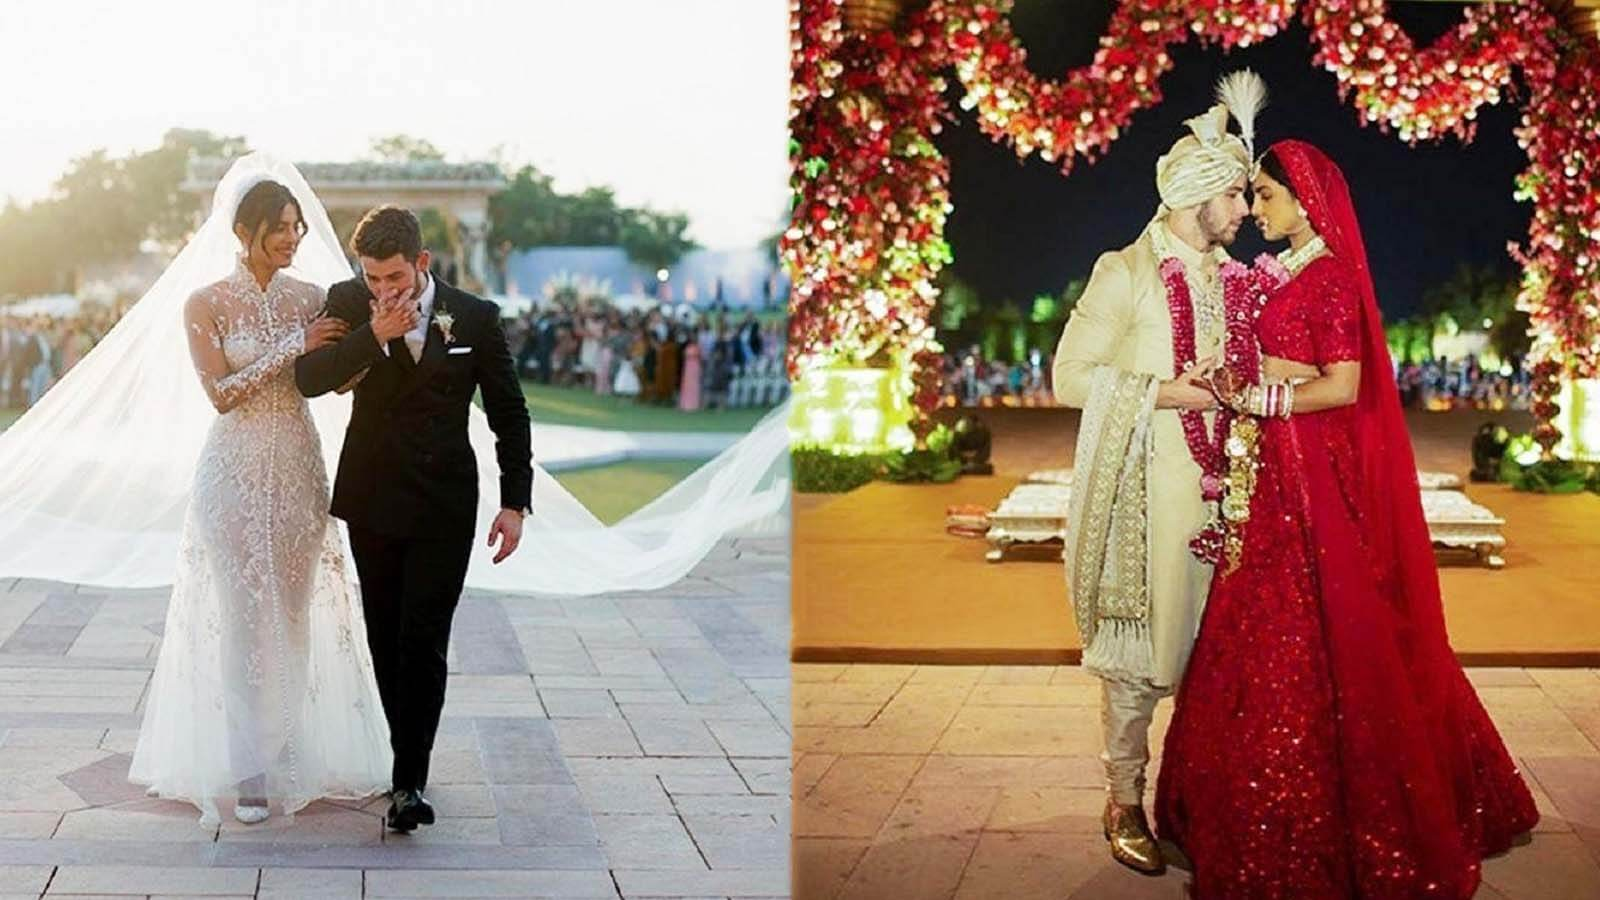 The Jaw Dropping Indo Western Wedding Of Priyanka And Nick,Summer Wedding Dresses 2020 Trends